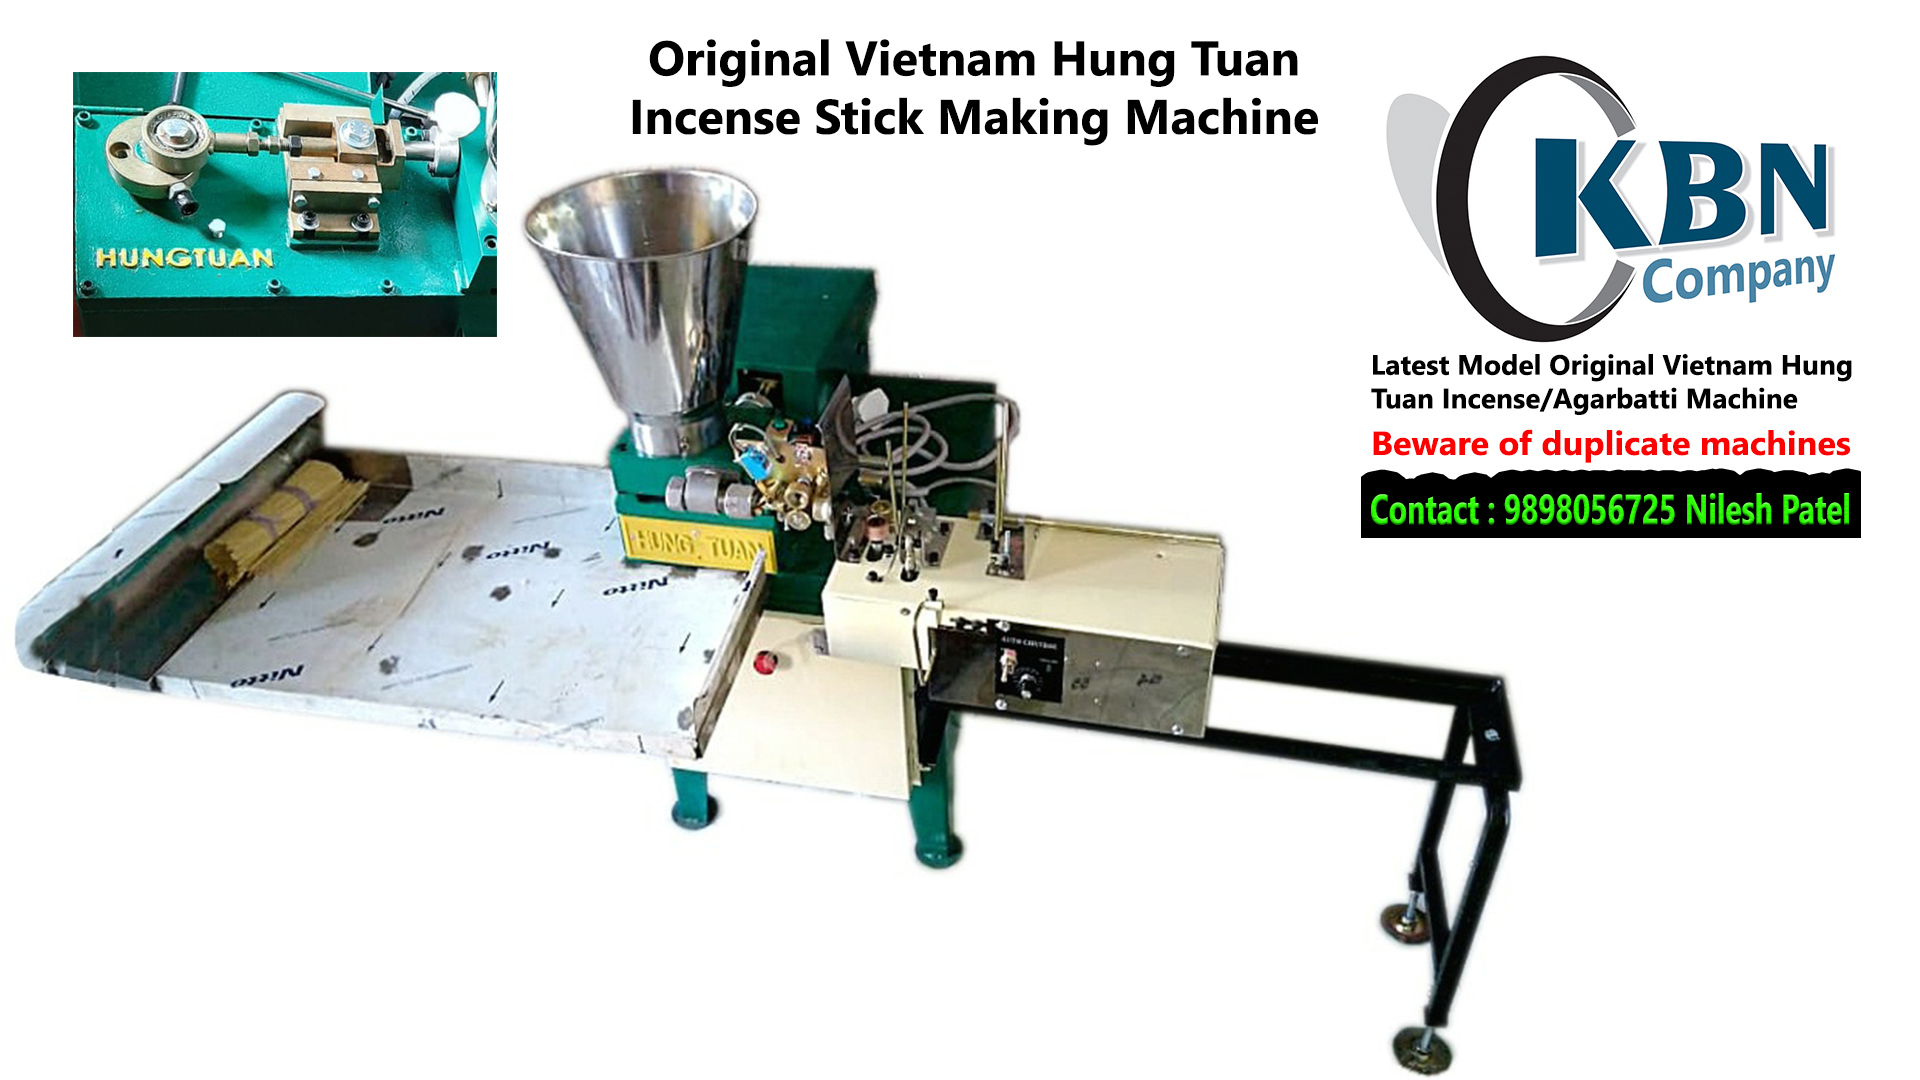 Original VIETNAM HUNG TUAN Incense/Agarbatti Making Machine.